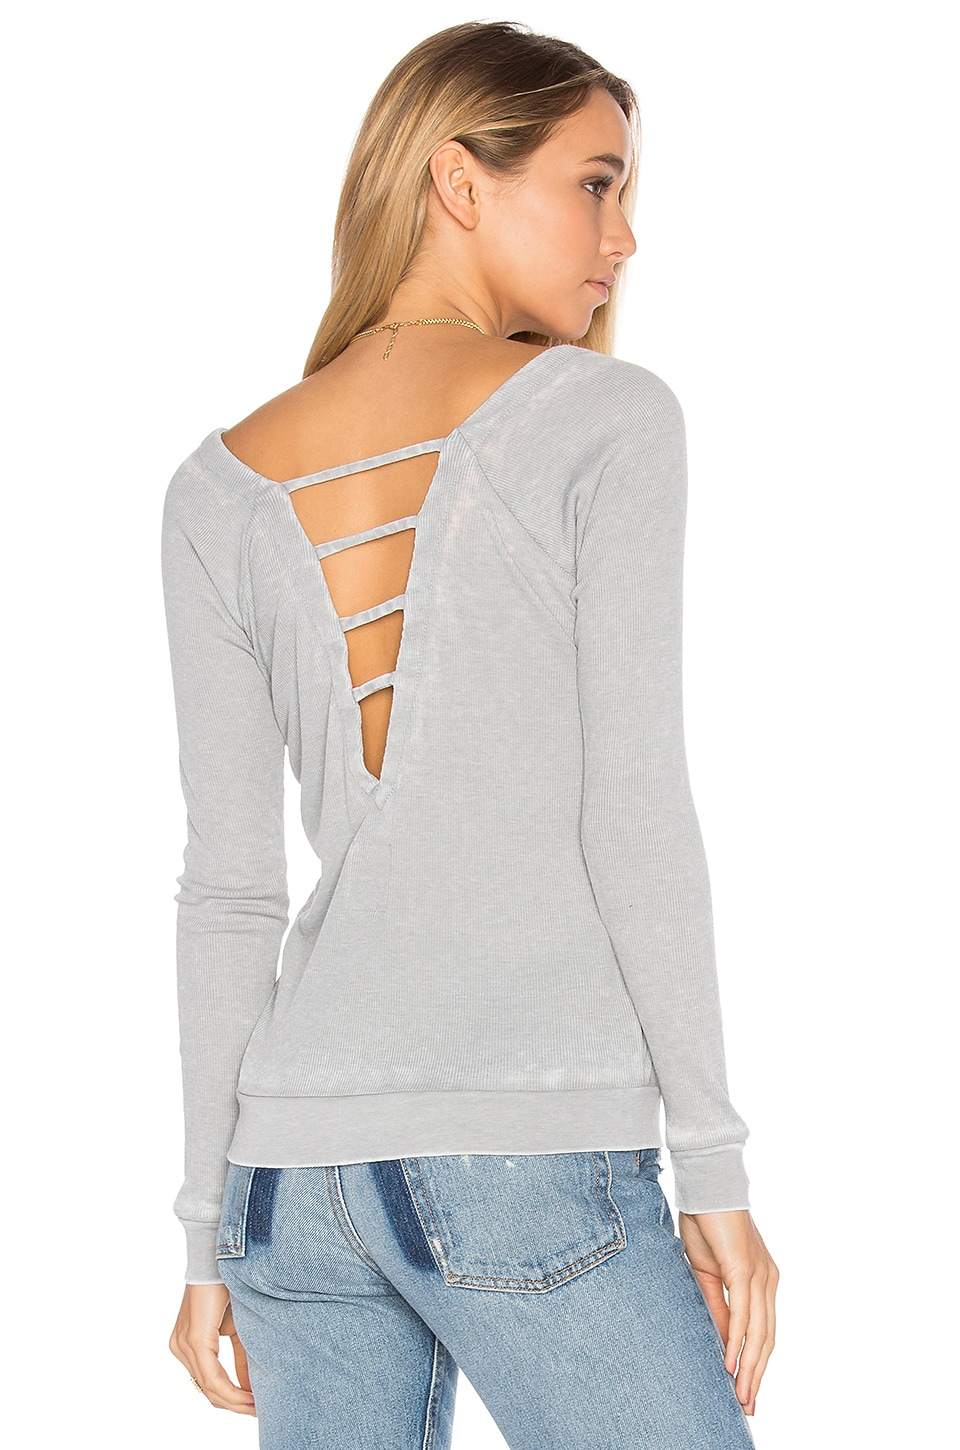 Chaser Strappy Double V Raglan Tee in Seagull